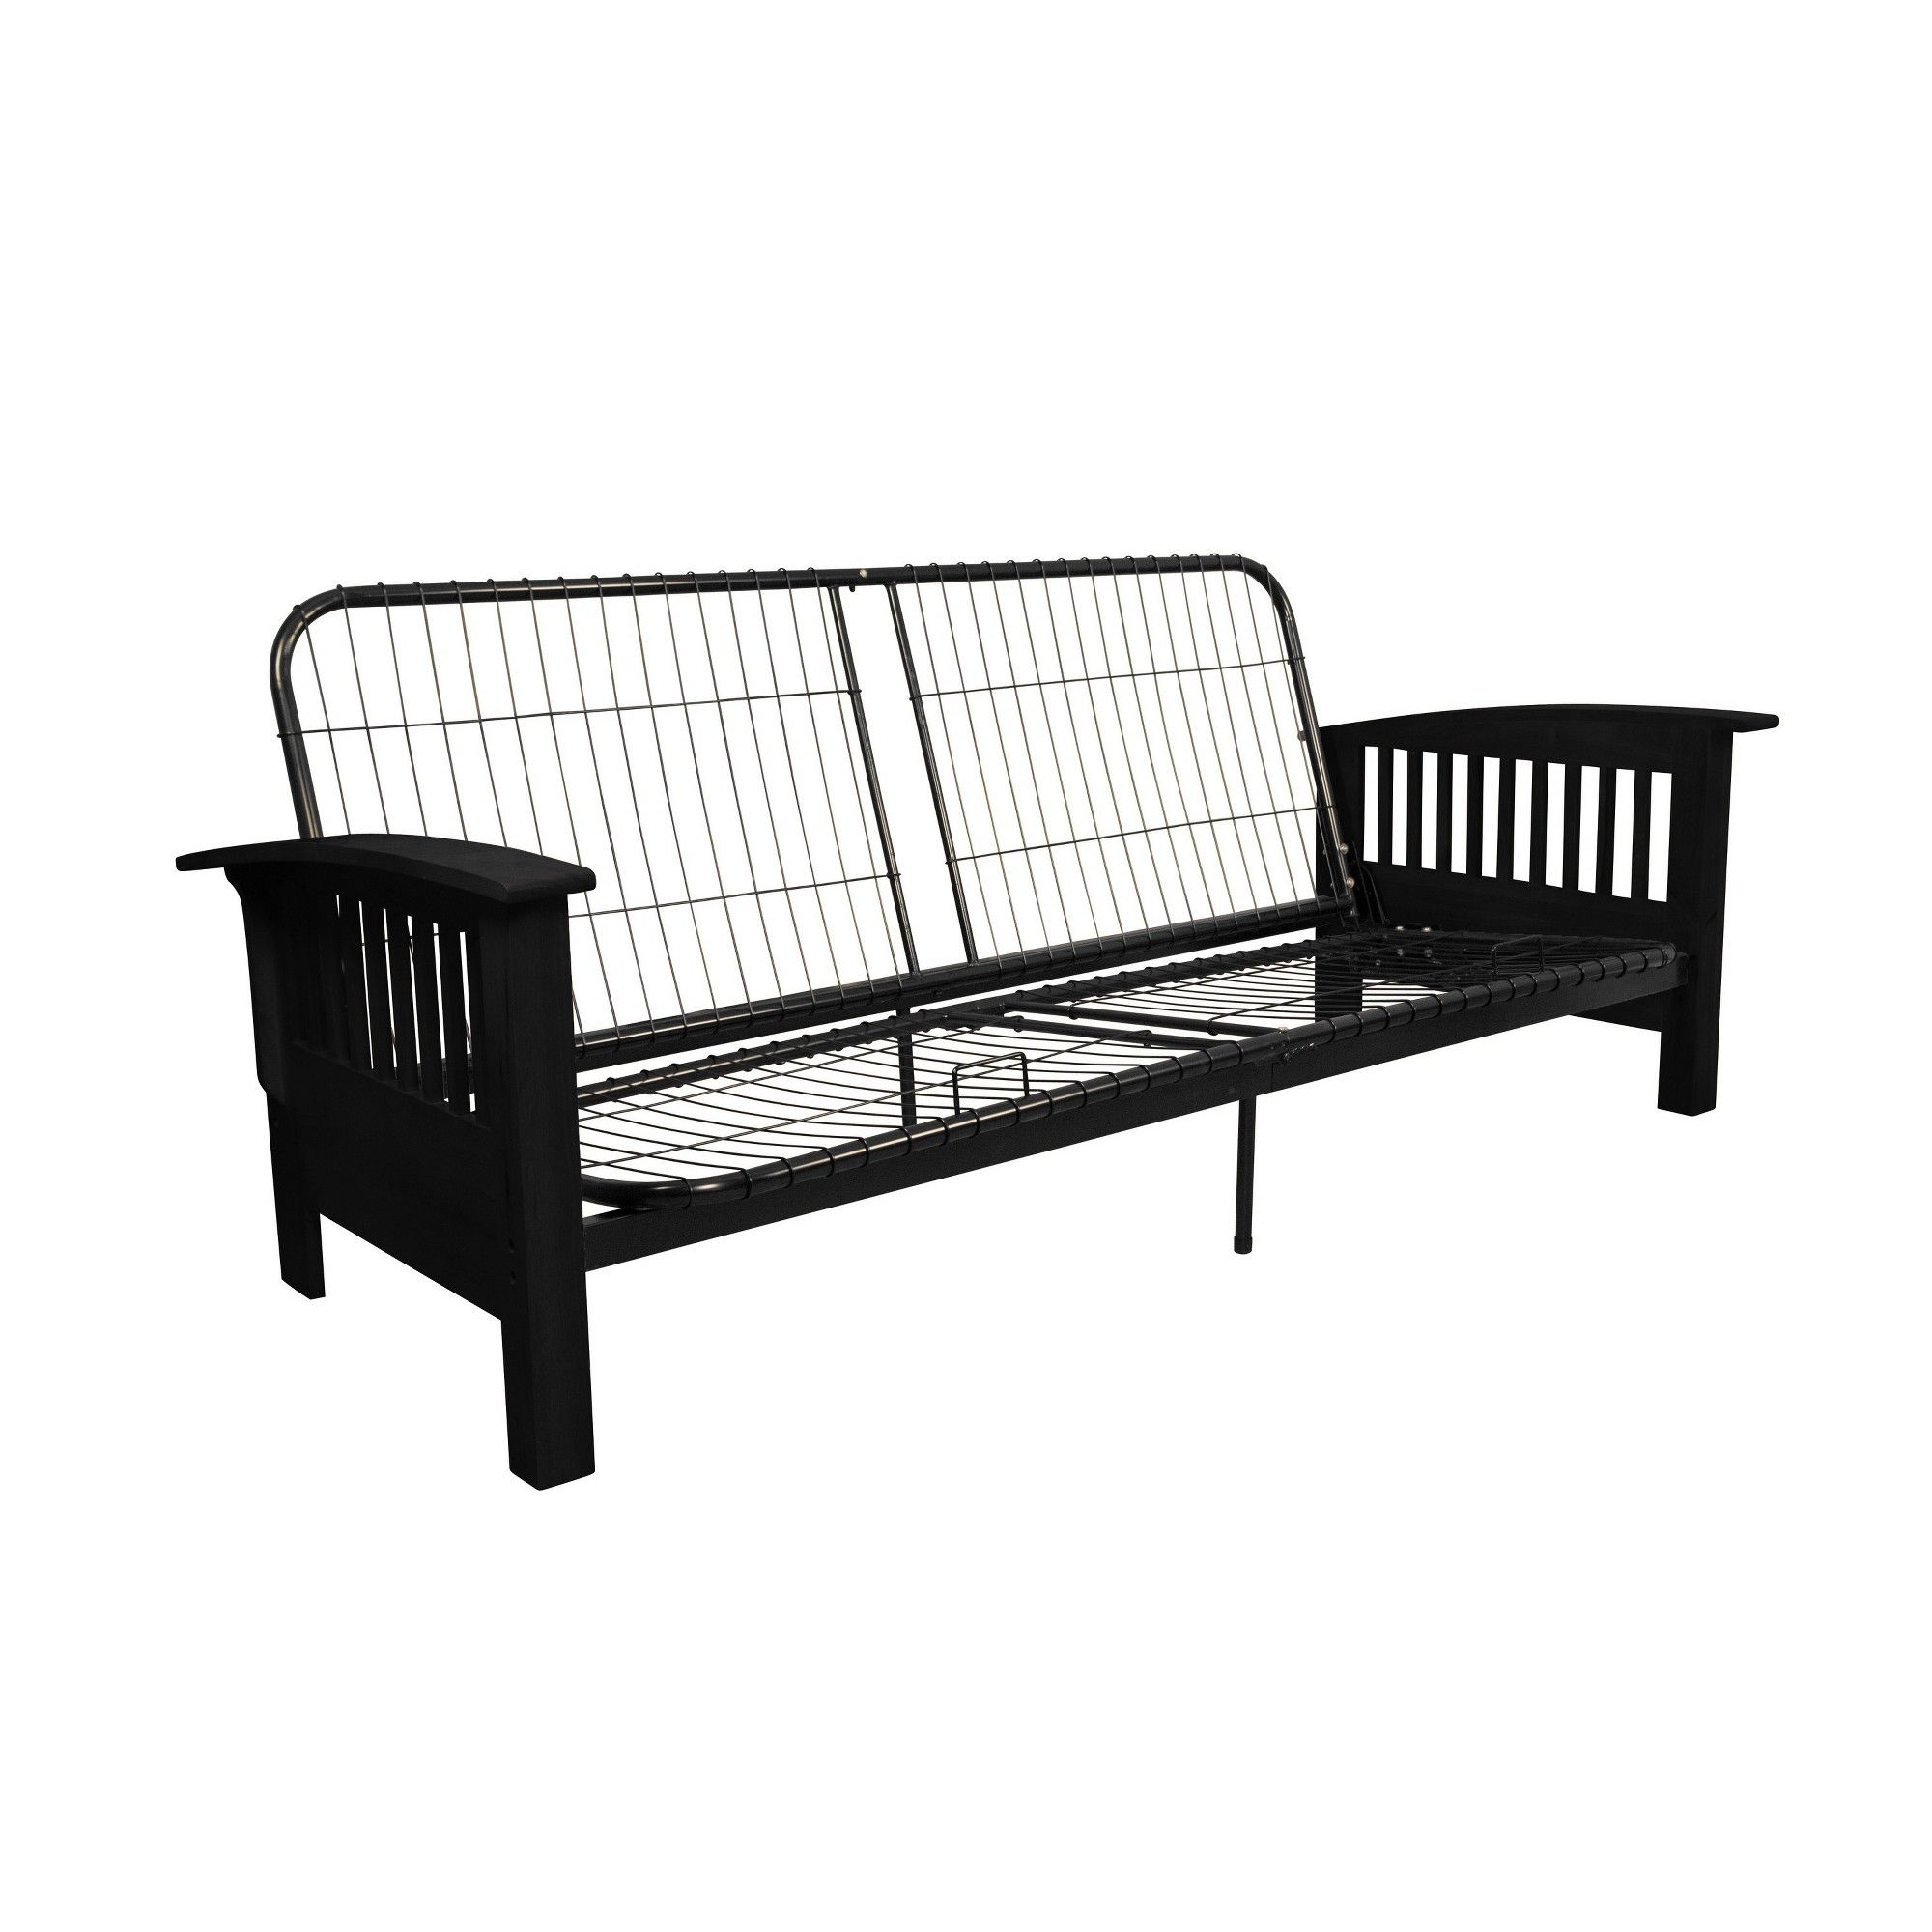 Stickley Futon Sofa Sleeper Bed Frame Black Finish Wood Arms